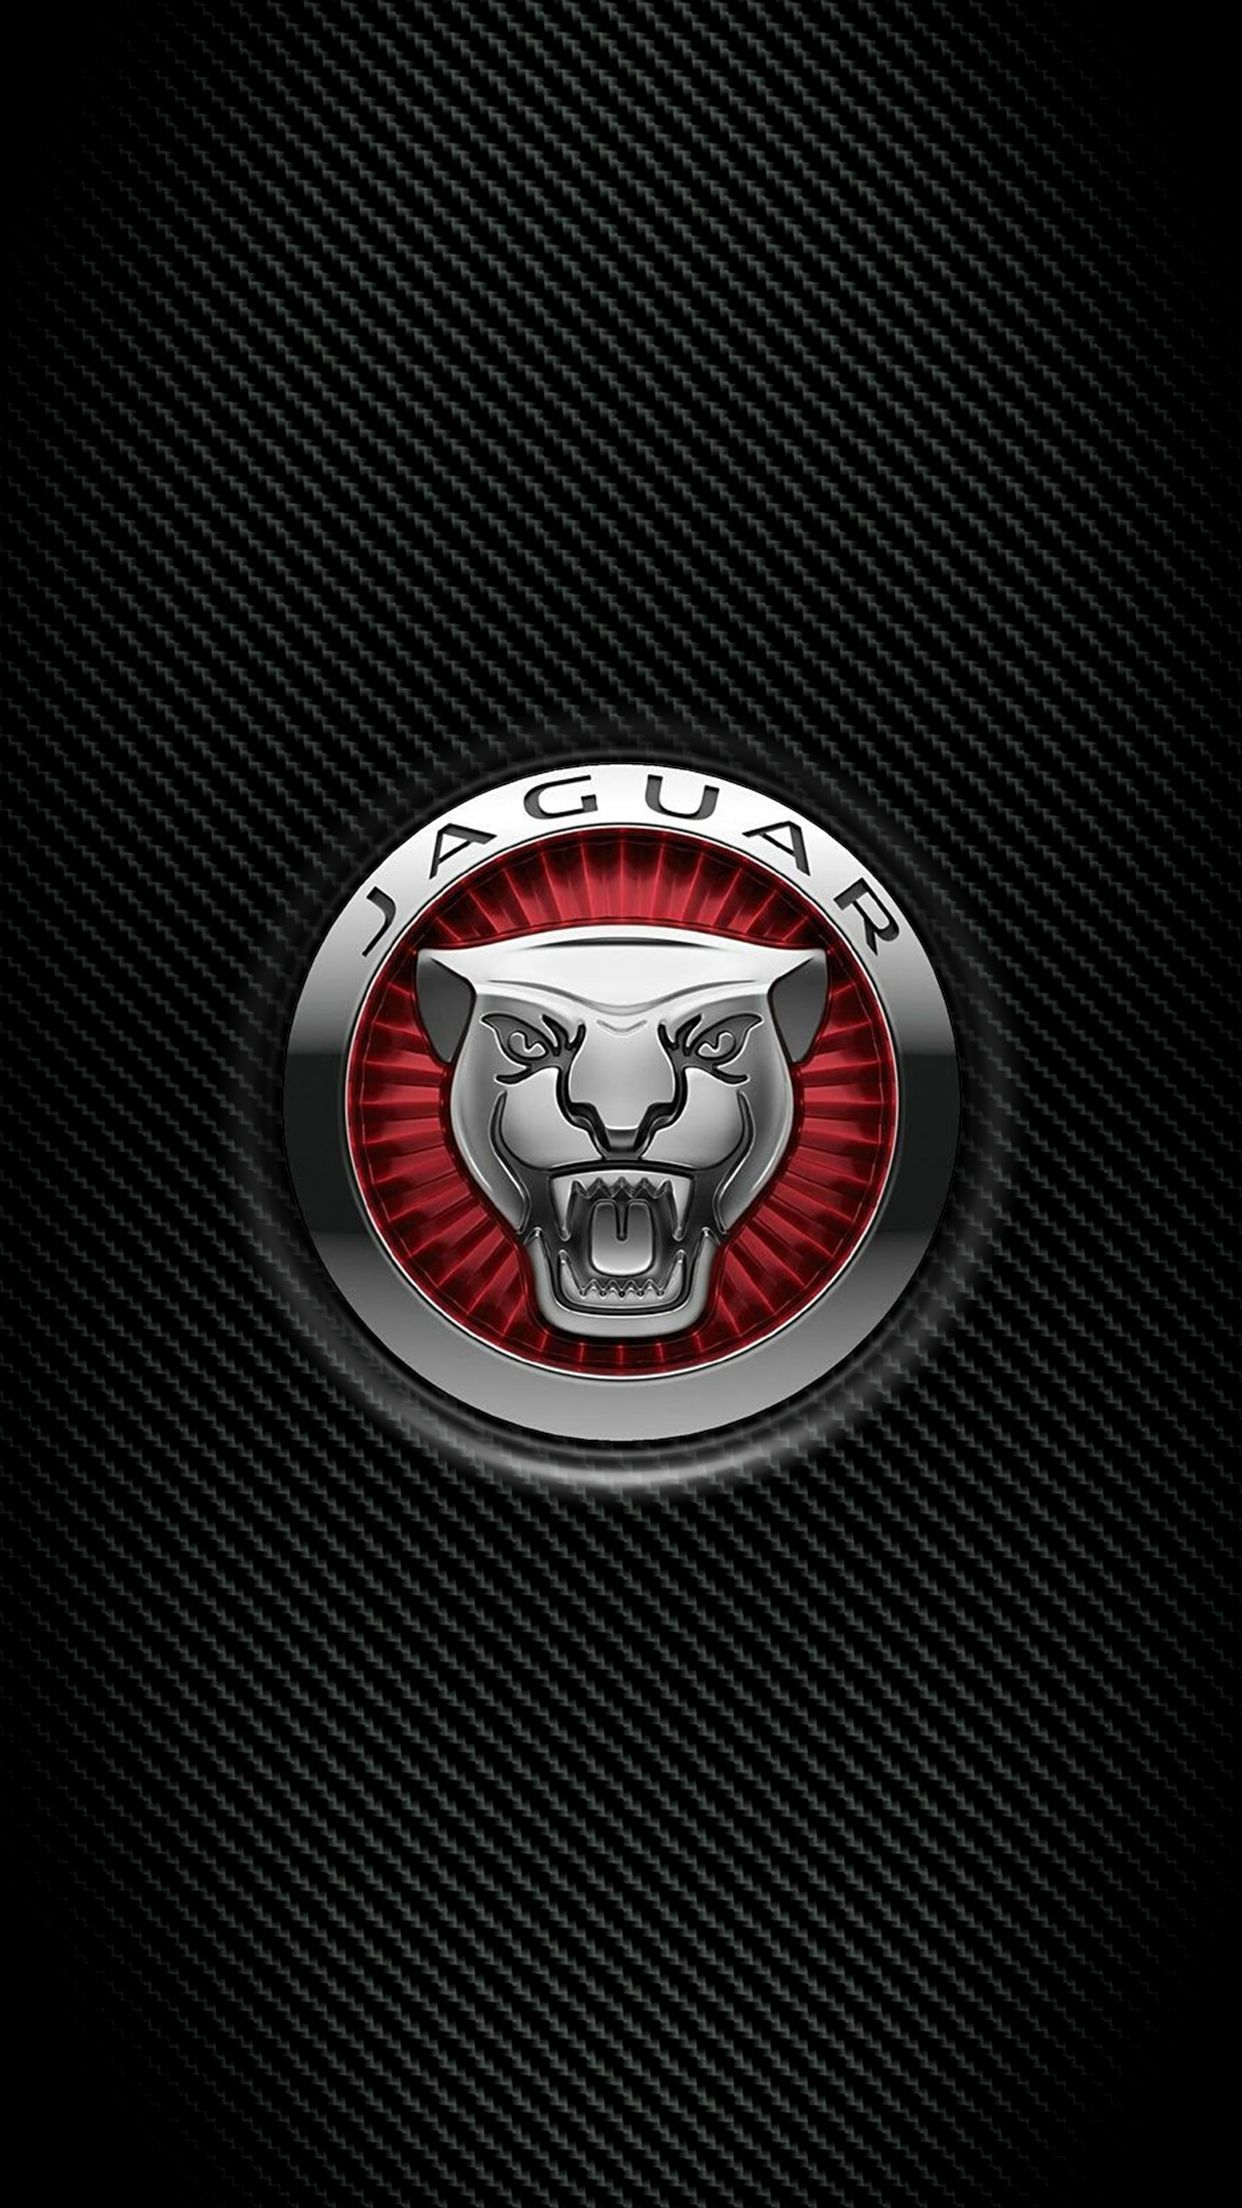 Jaguar Logo Wallpaper Posted By Samantha Tremblay